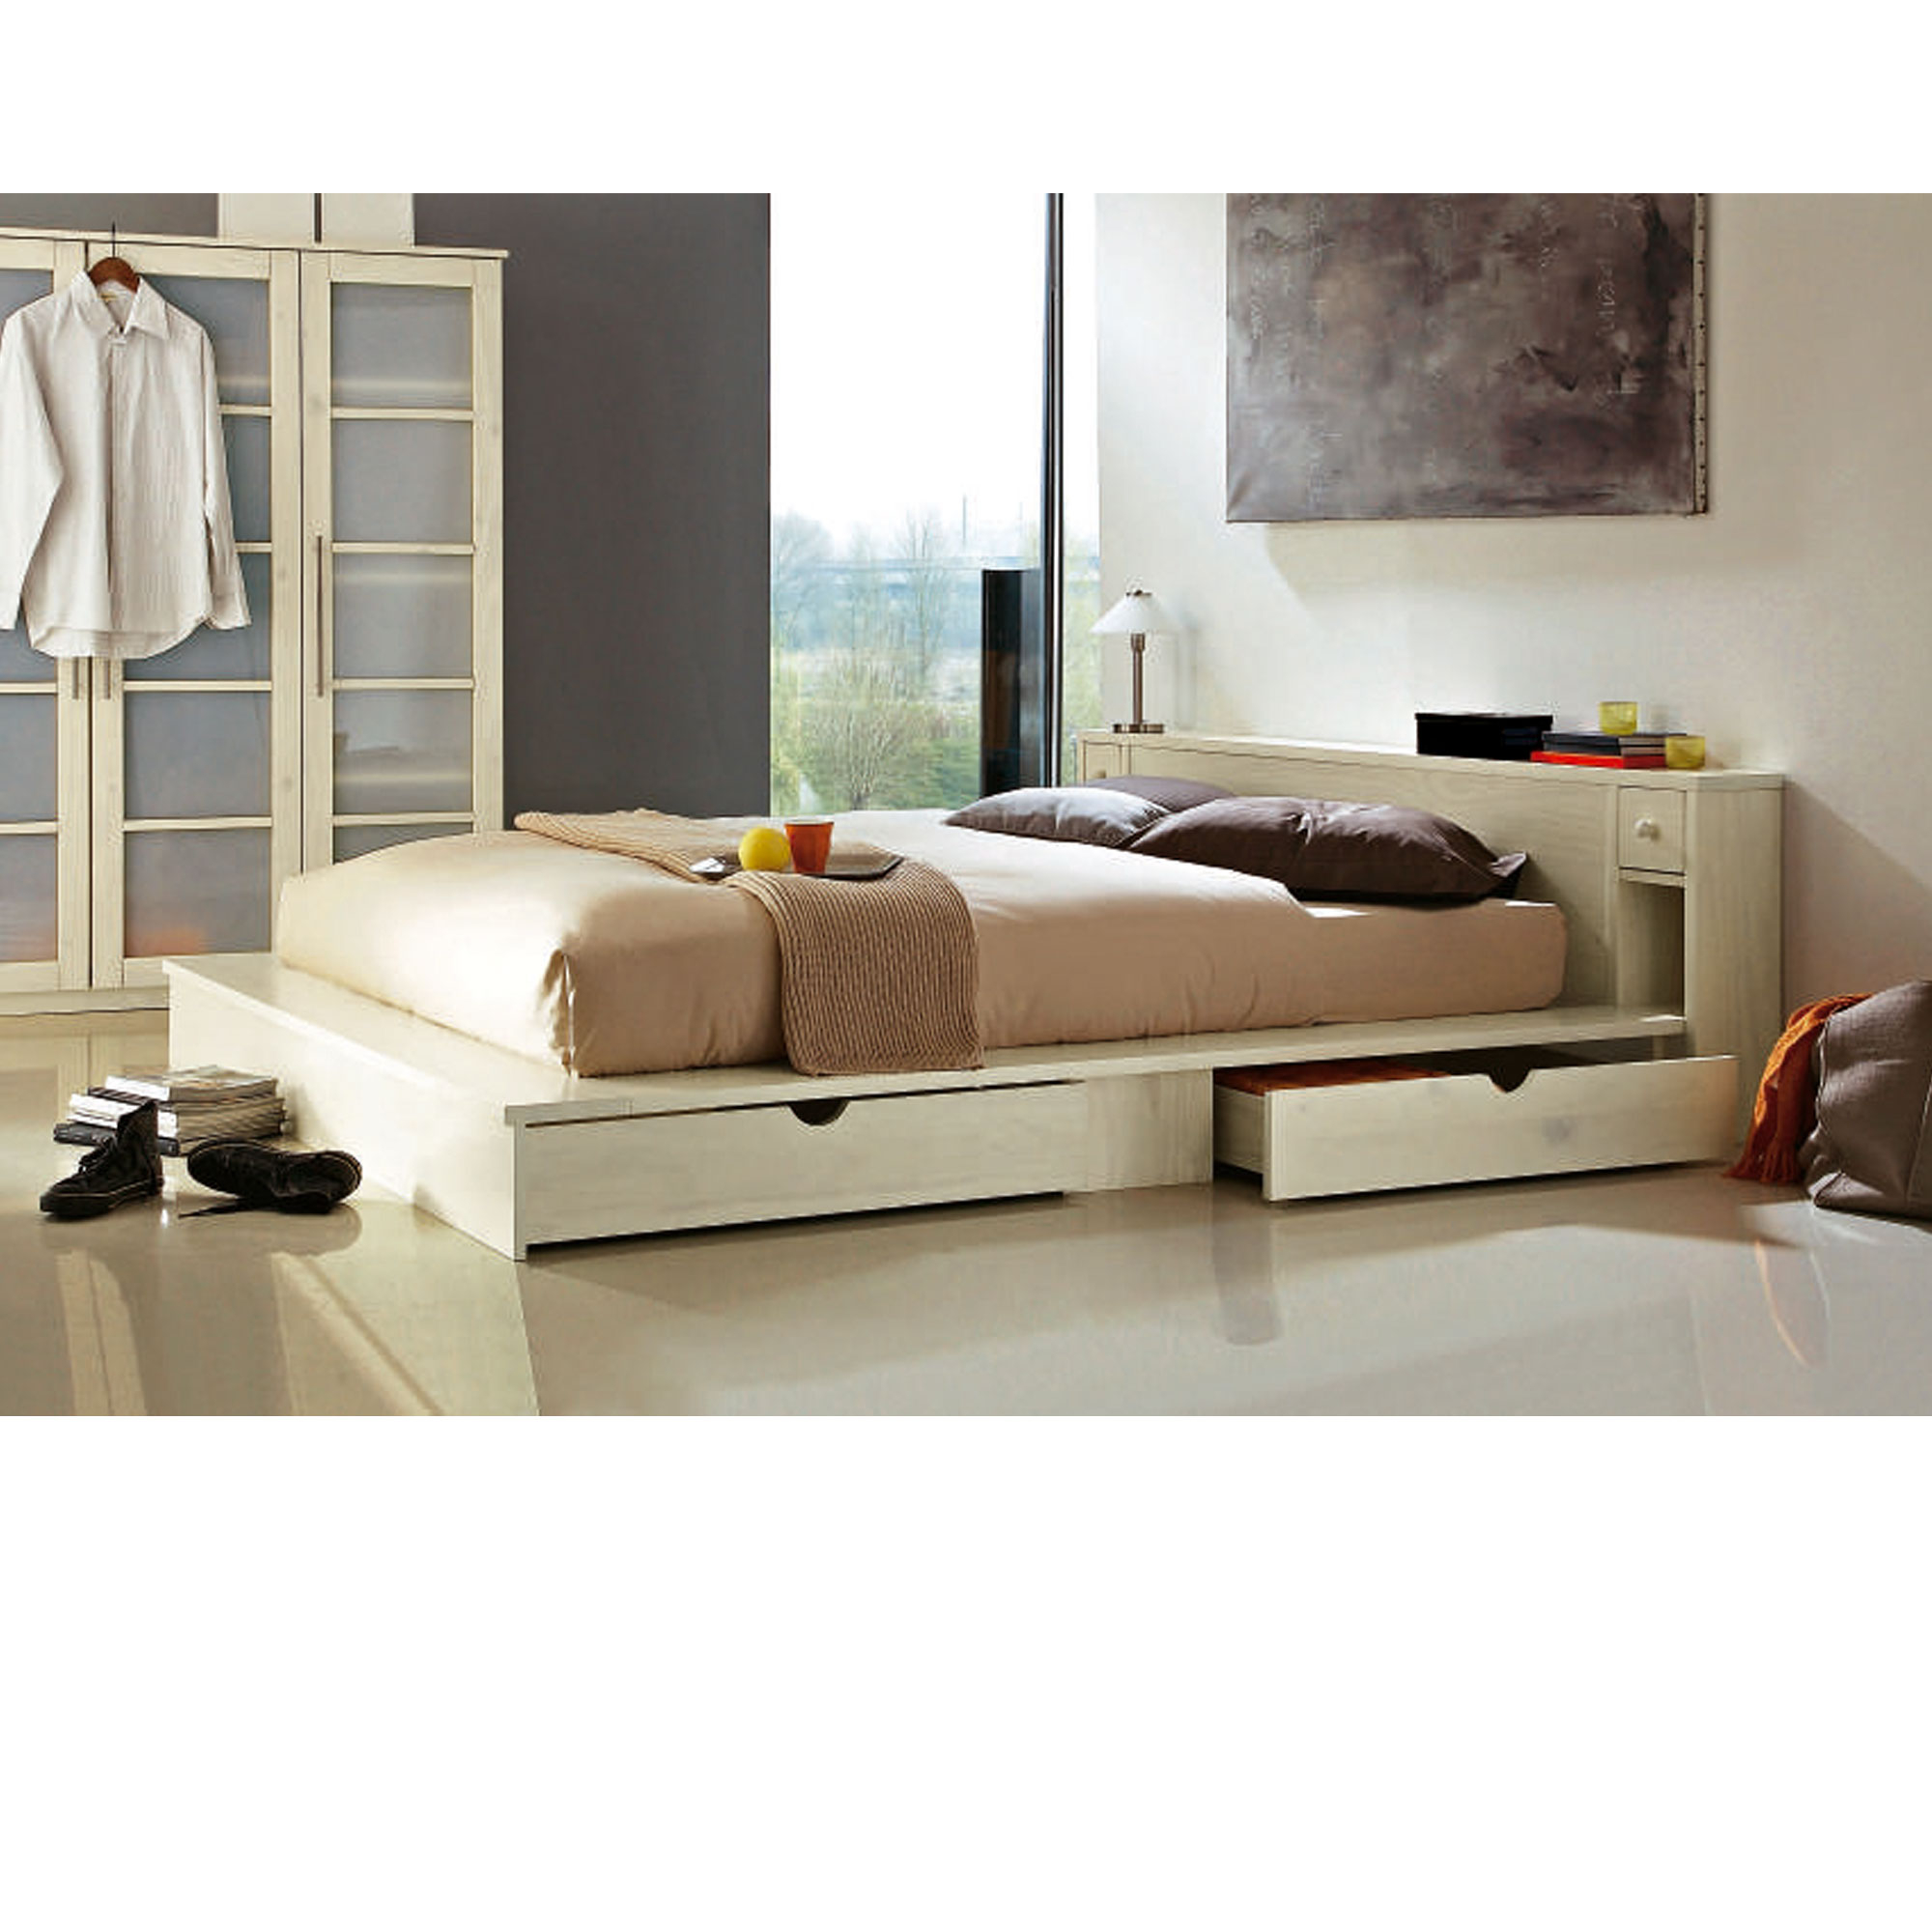 lit t te de lit sommier ontario 160 x 200 cm blanc anniversaire 40 ans acheter ce. Black Bedroom Furniture Sets. Home Design Ideas